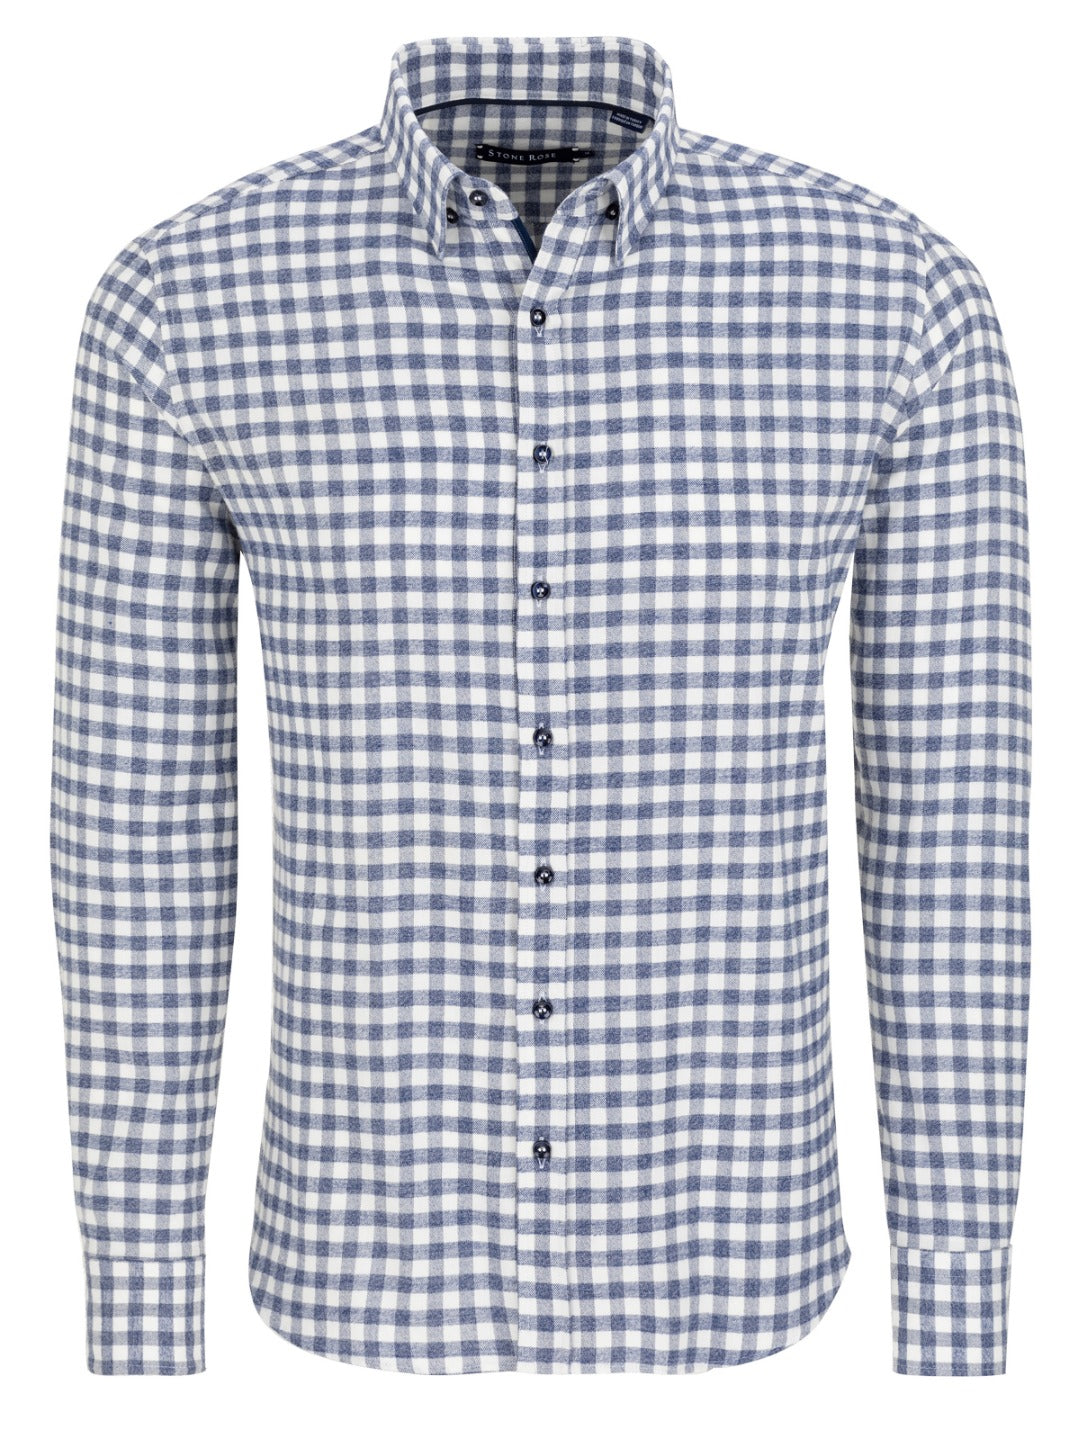 Blue Flannel Check Long Sleeve Shirt